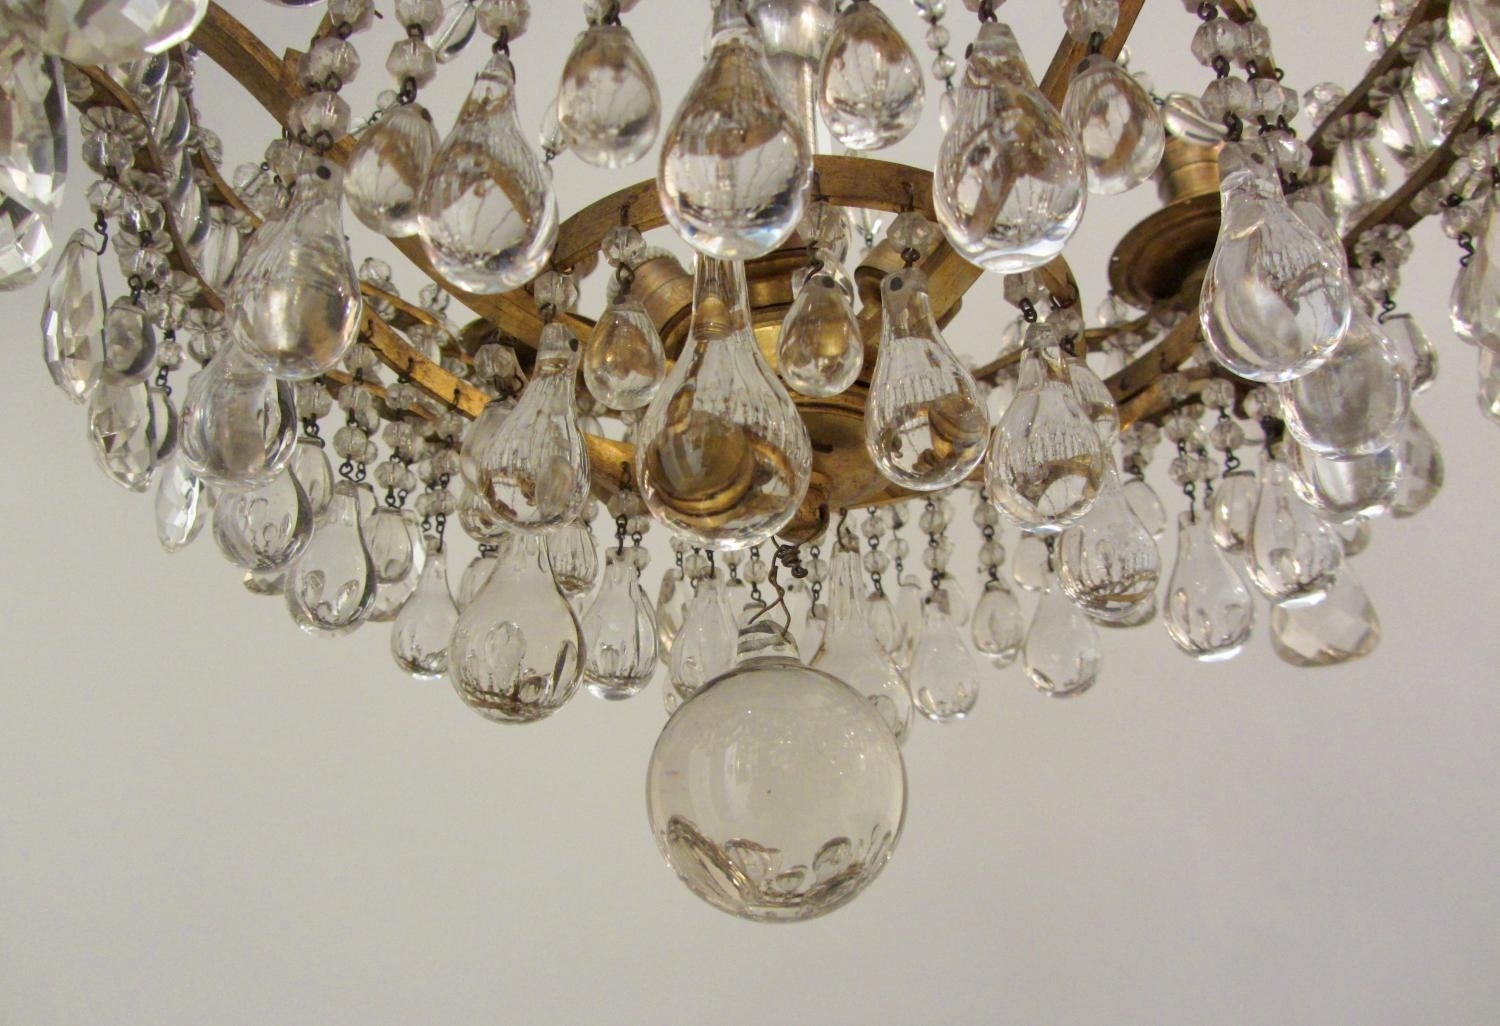 Chandelier Ideas An Unusual Gilt Brass And Crystal Chandelier In Intended For Unusual Chandeliers (Image 4 of 15)